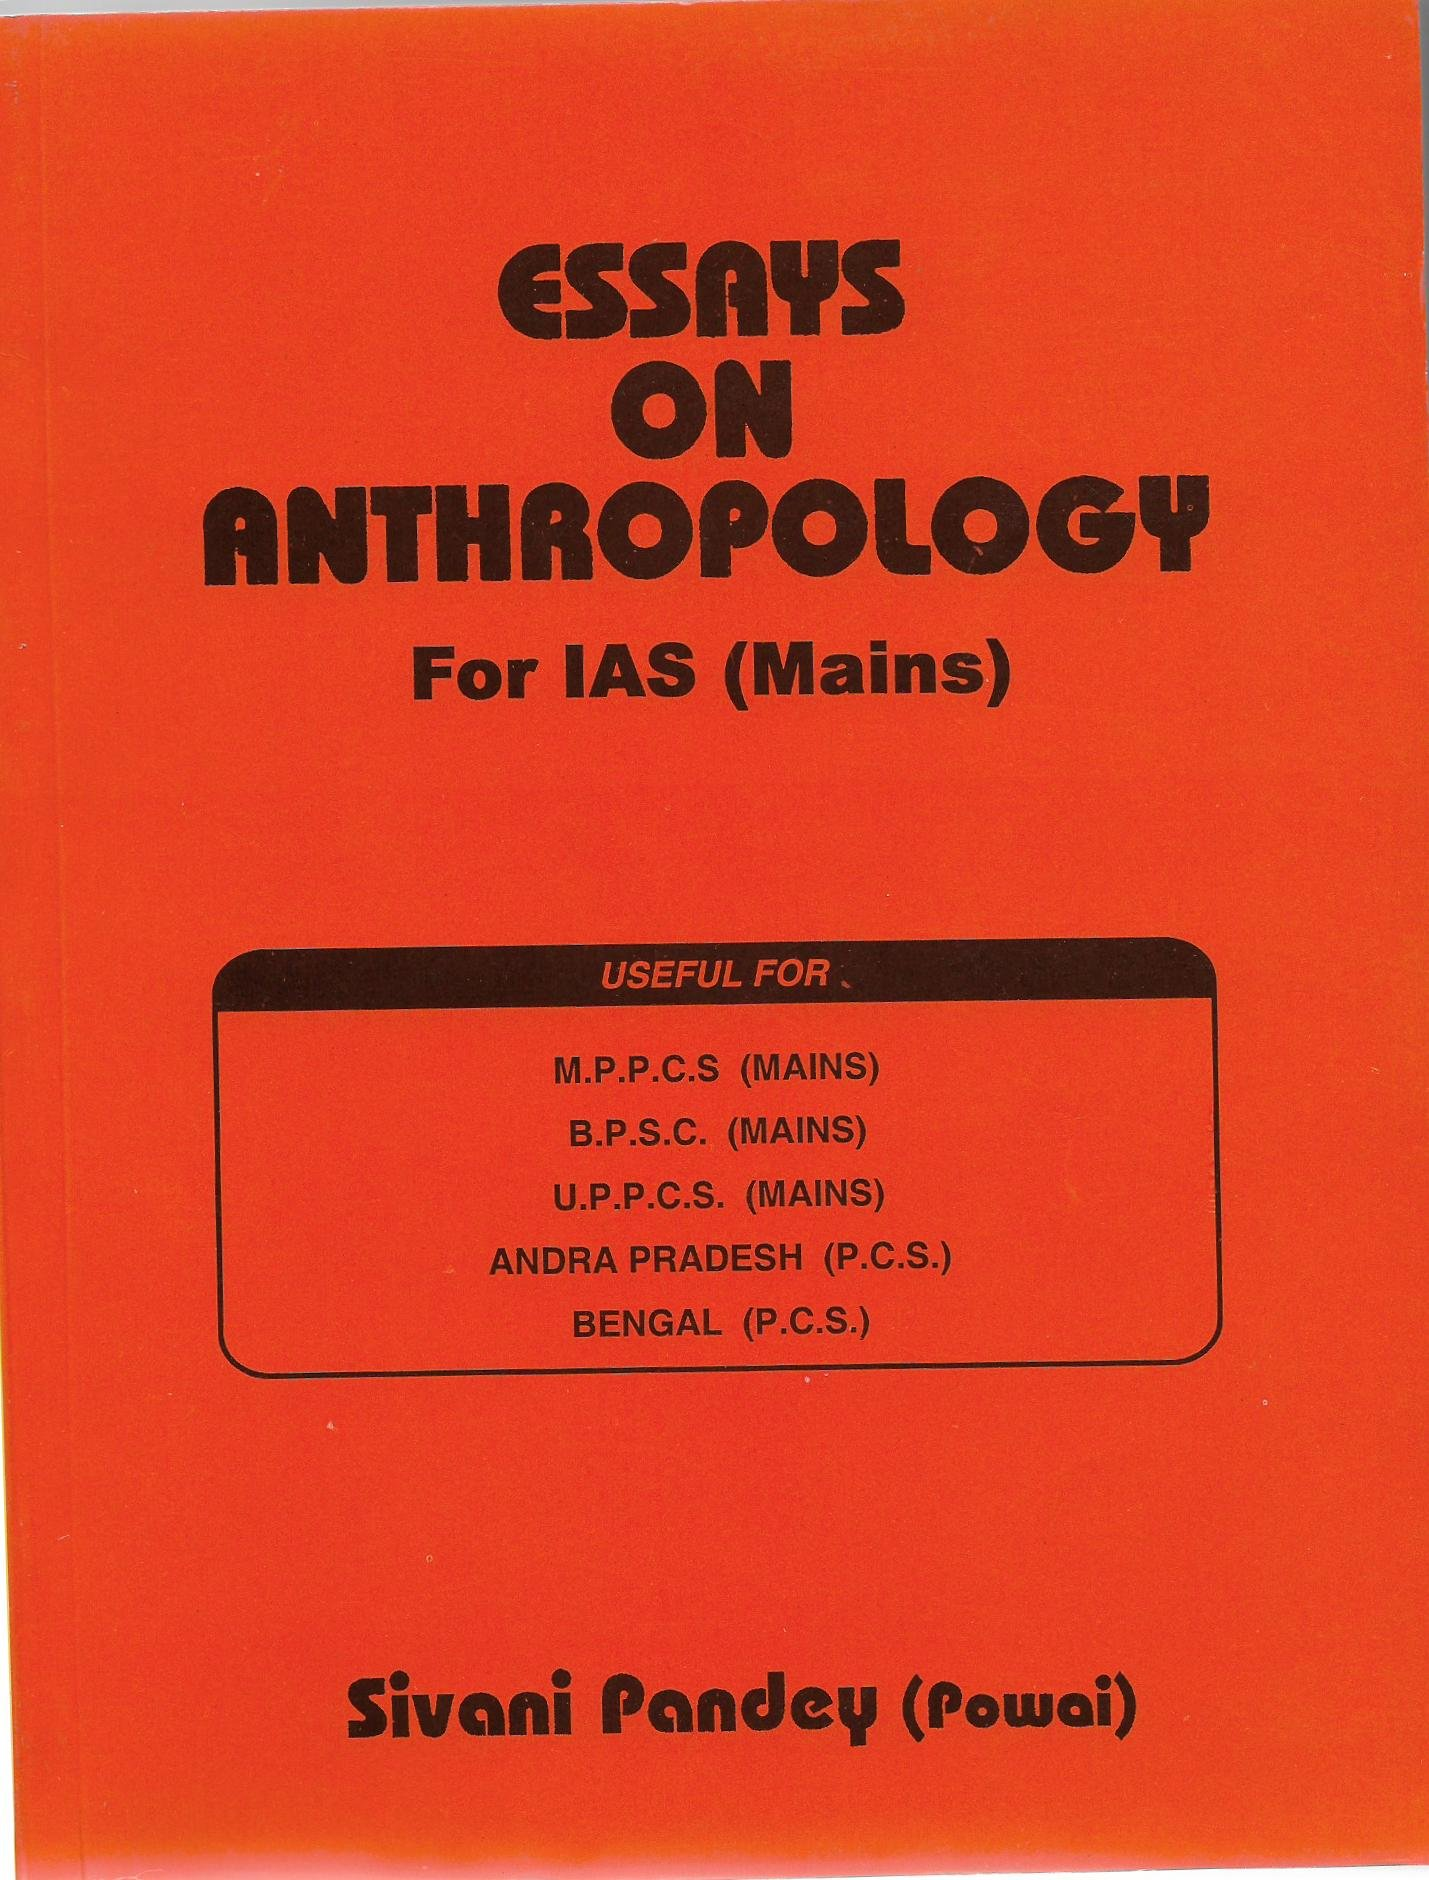 buy essays on anthropology for ias mains book online at low  buy essays on anthropology for ias mains book online at low prices in essays on anthropology for ias mains reviews ratings in